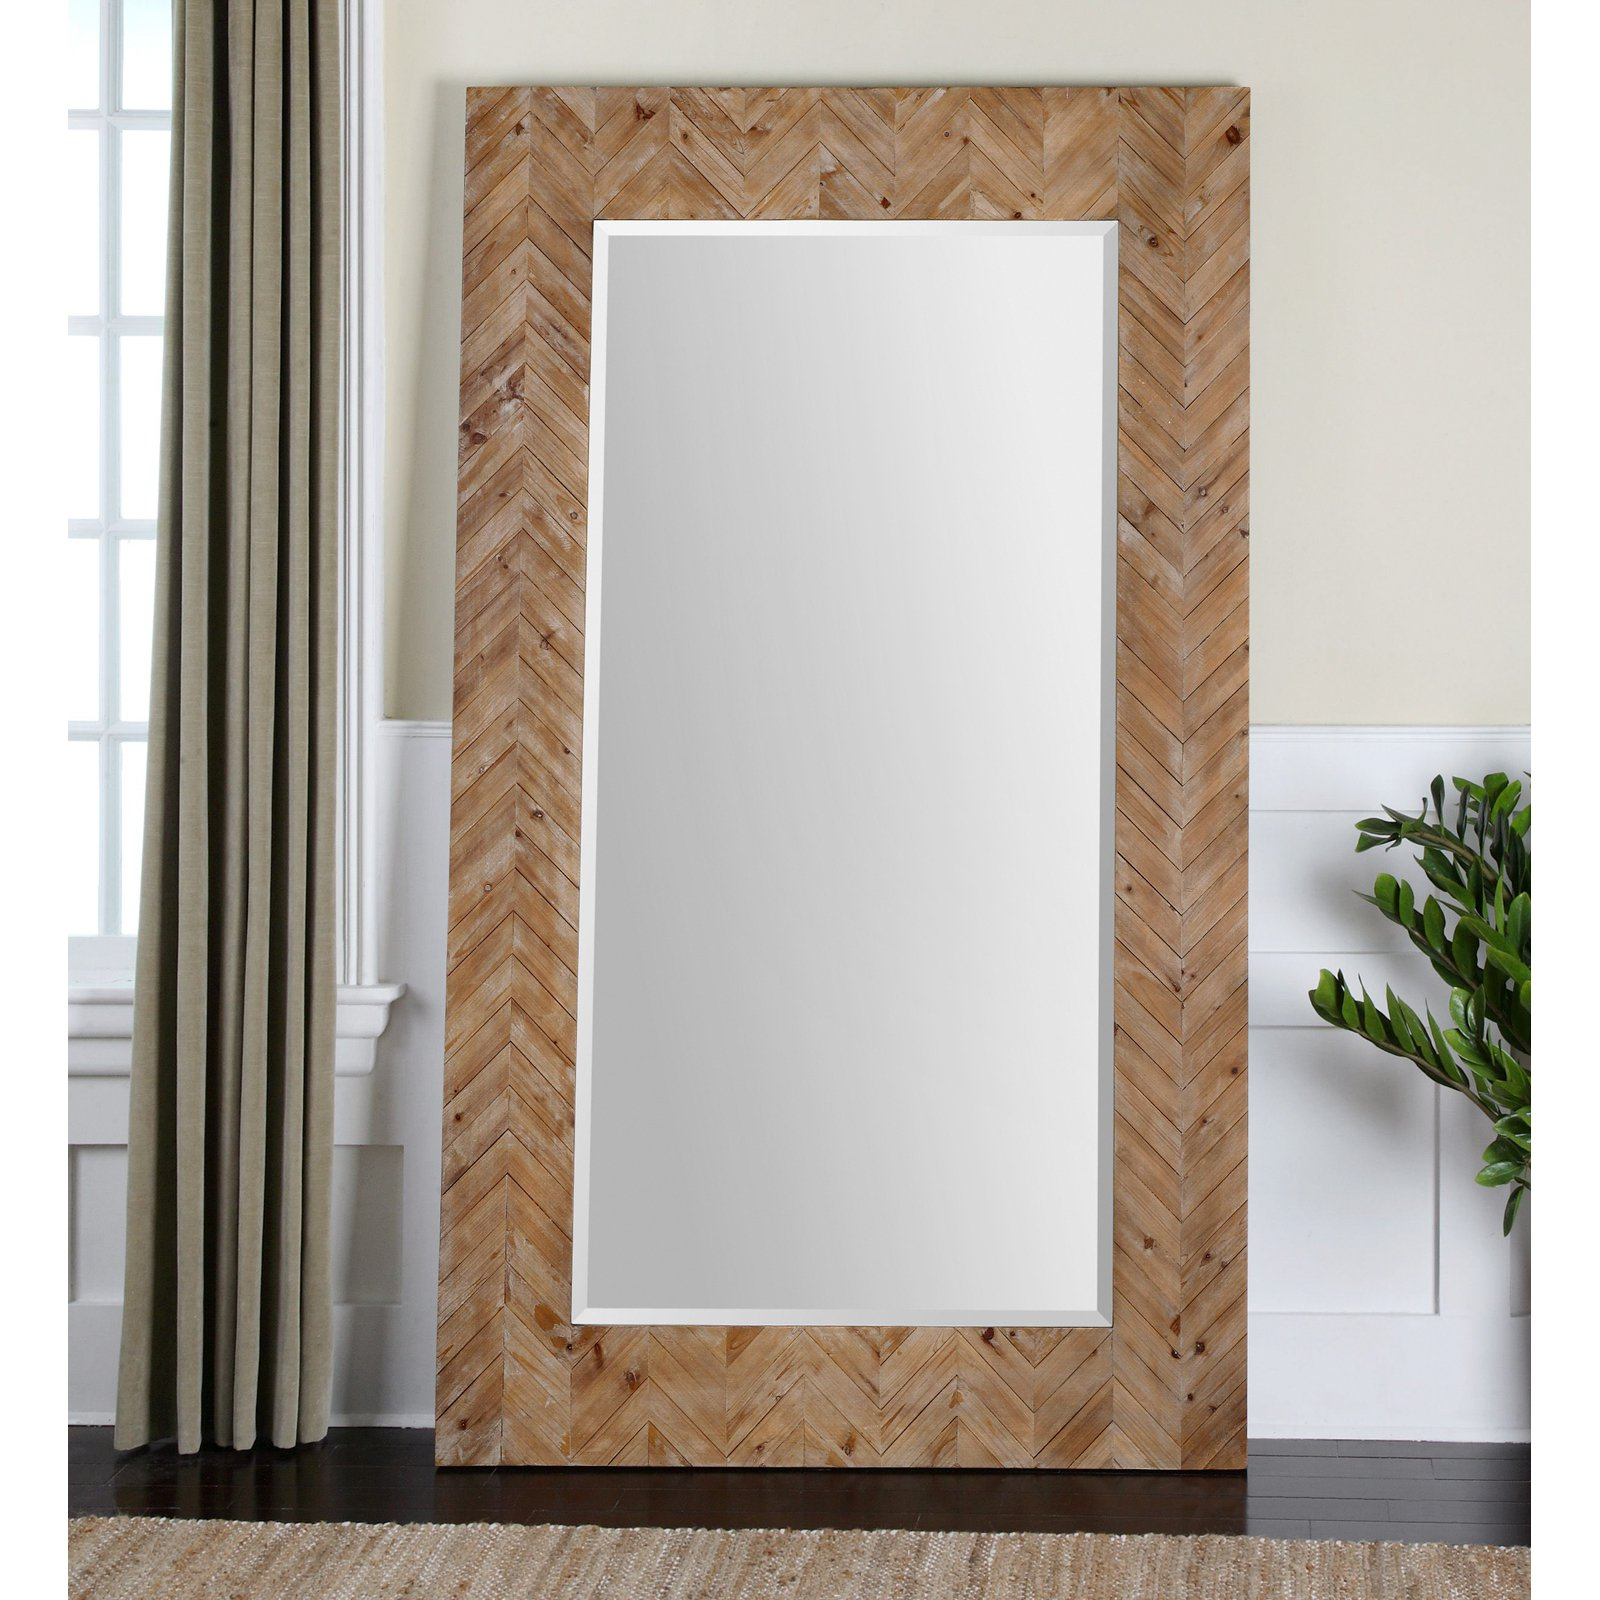 Hn Home Alta Modern Farmhouse Oversized Wooden Wall Or Leaner Mirror 43 75w X 74h In Walmart Com Walmart Com